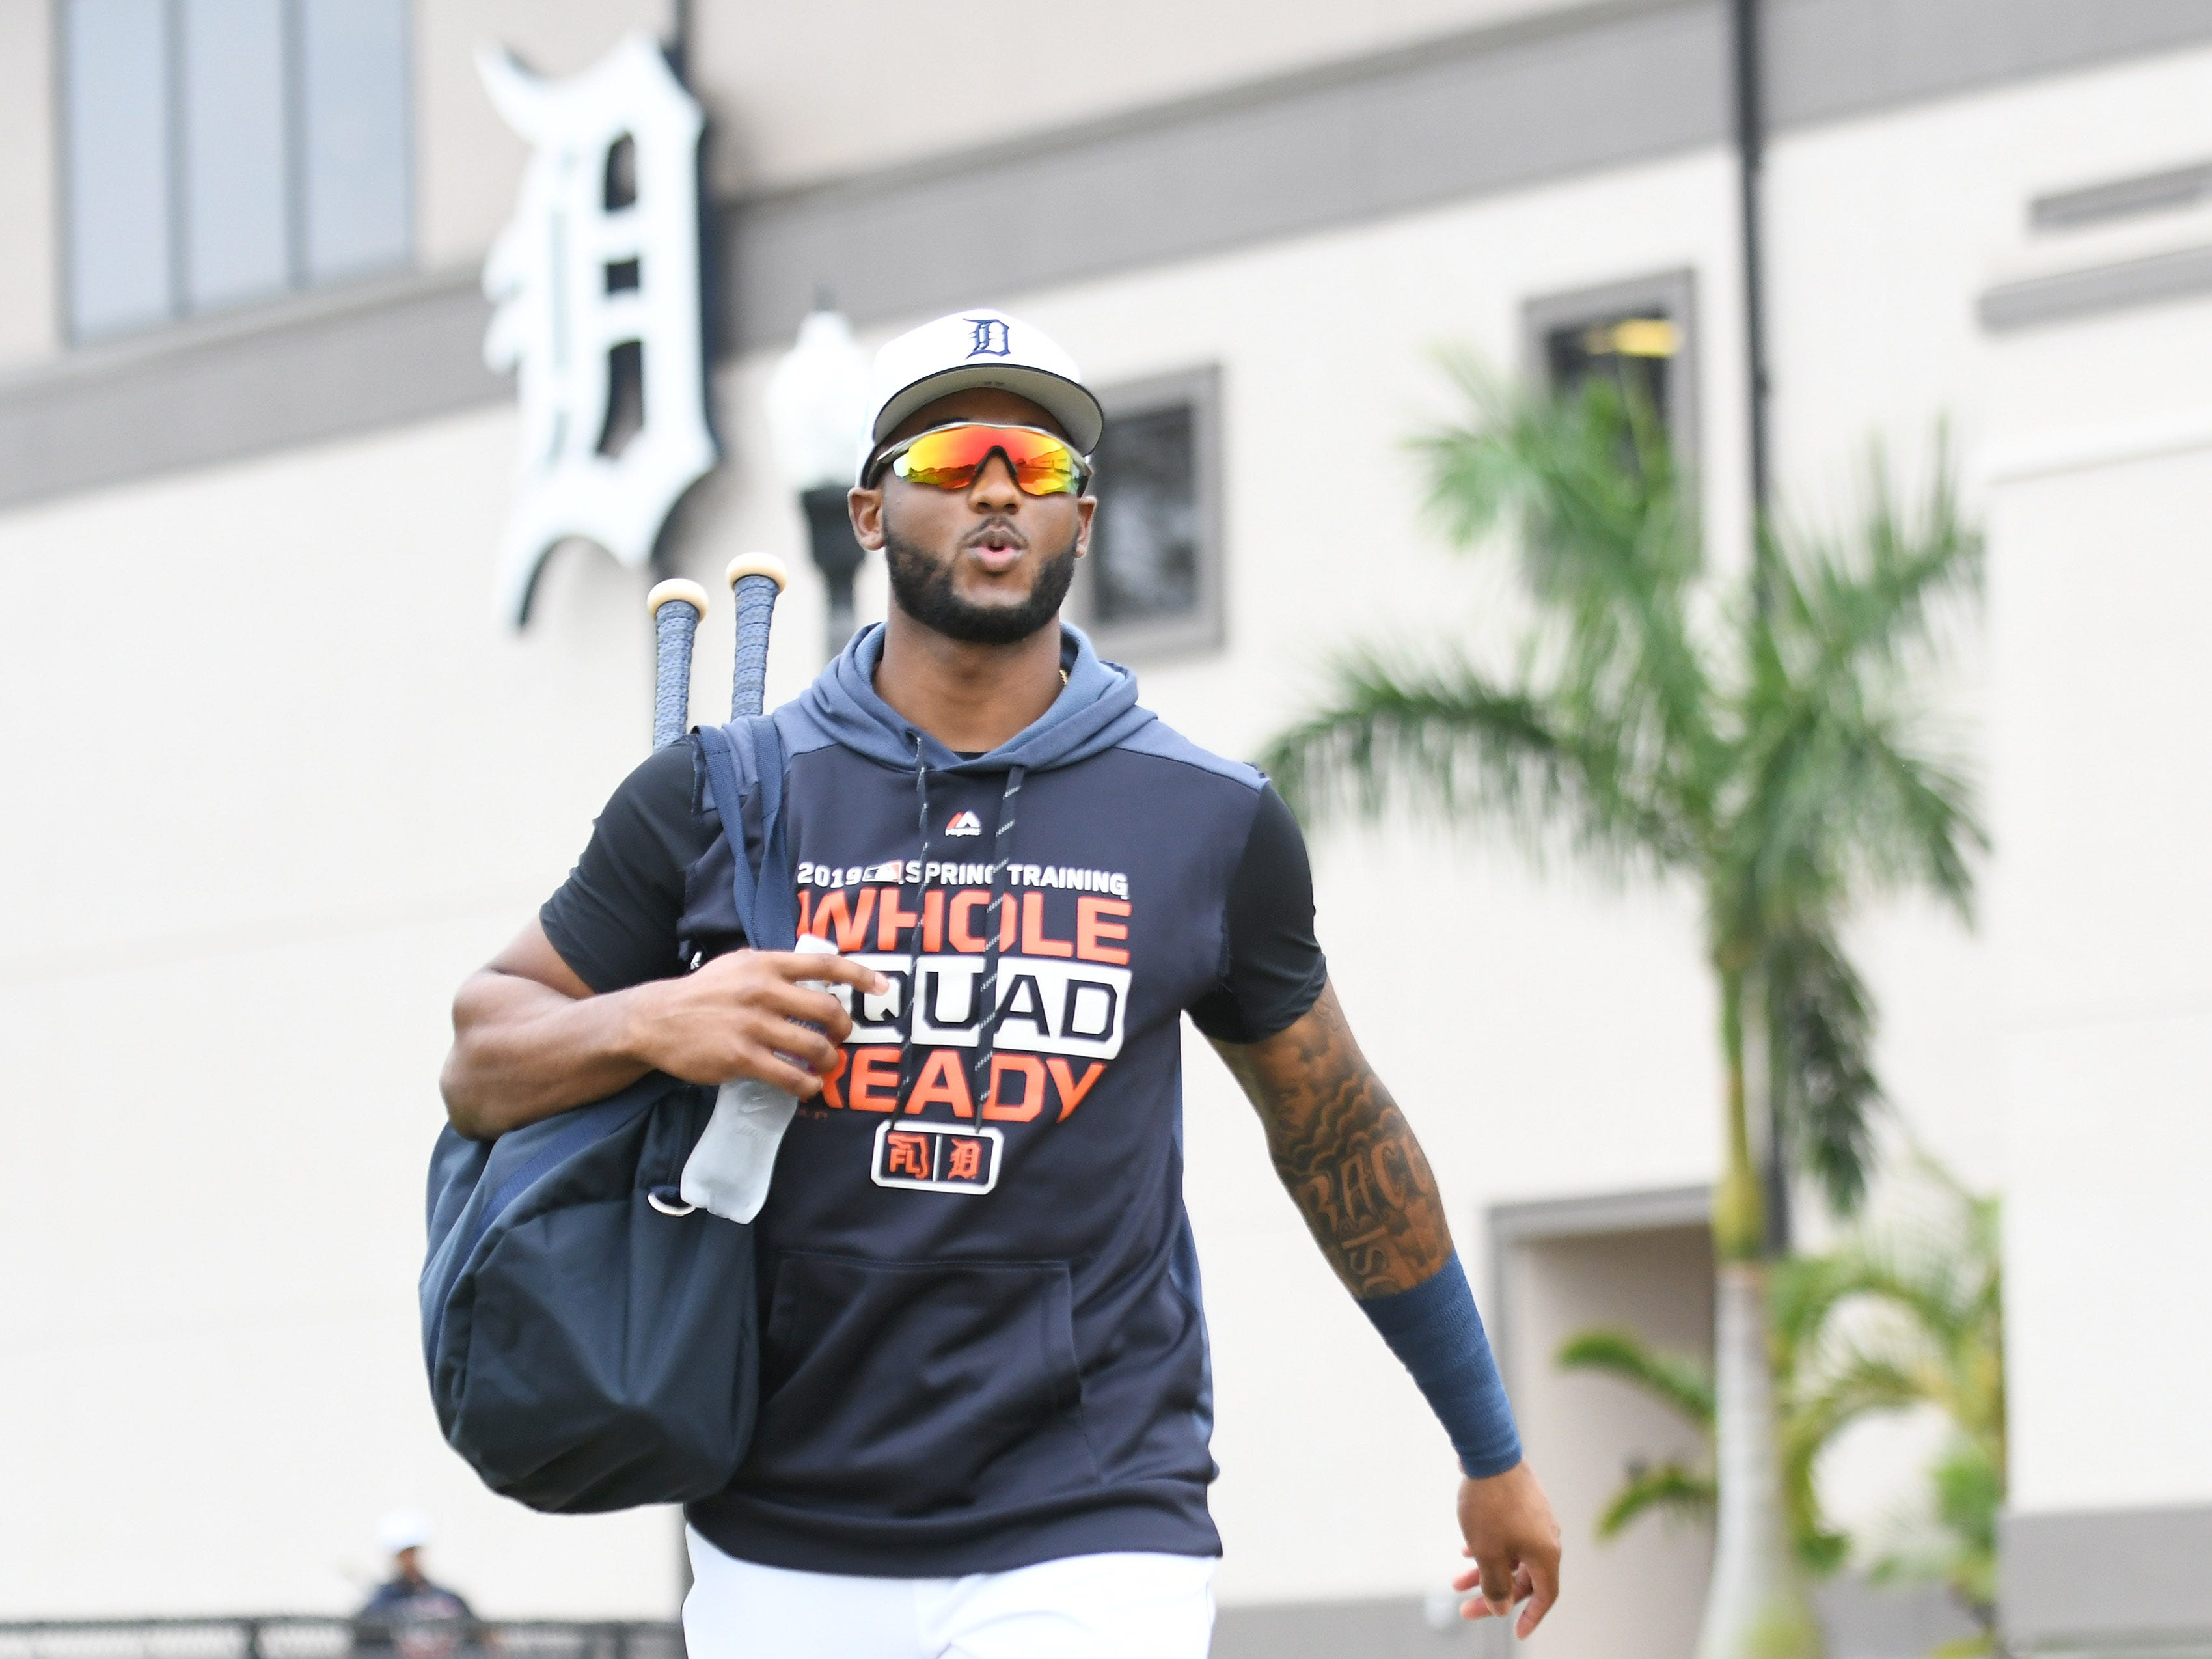 Tigers' Niko Goodrum heads towards the fields for the first full squad workout at Tigers spring training in Lakeland, Fla. on Feb. 18, 2019.